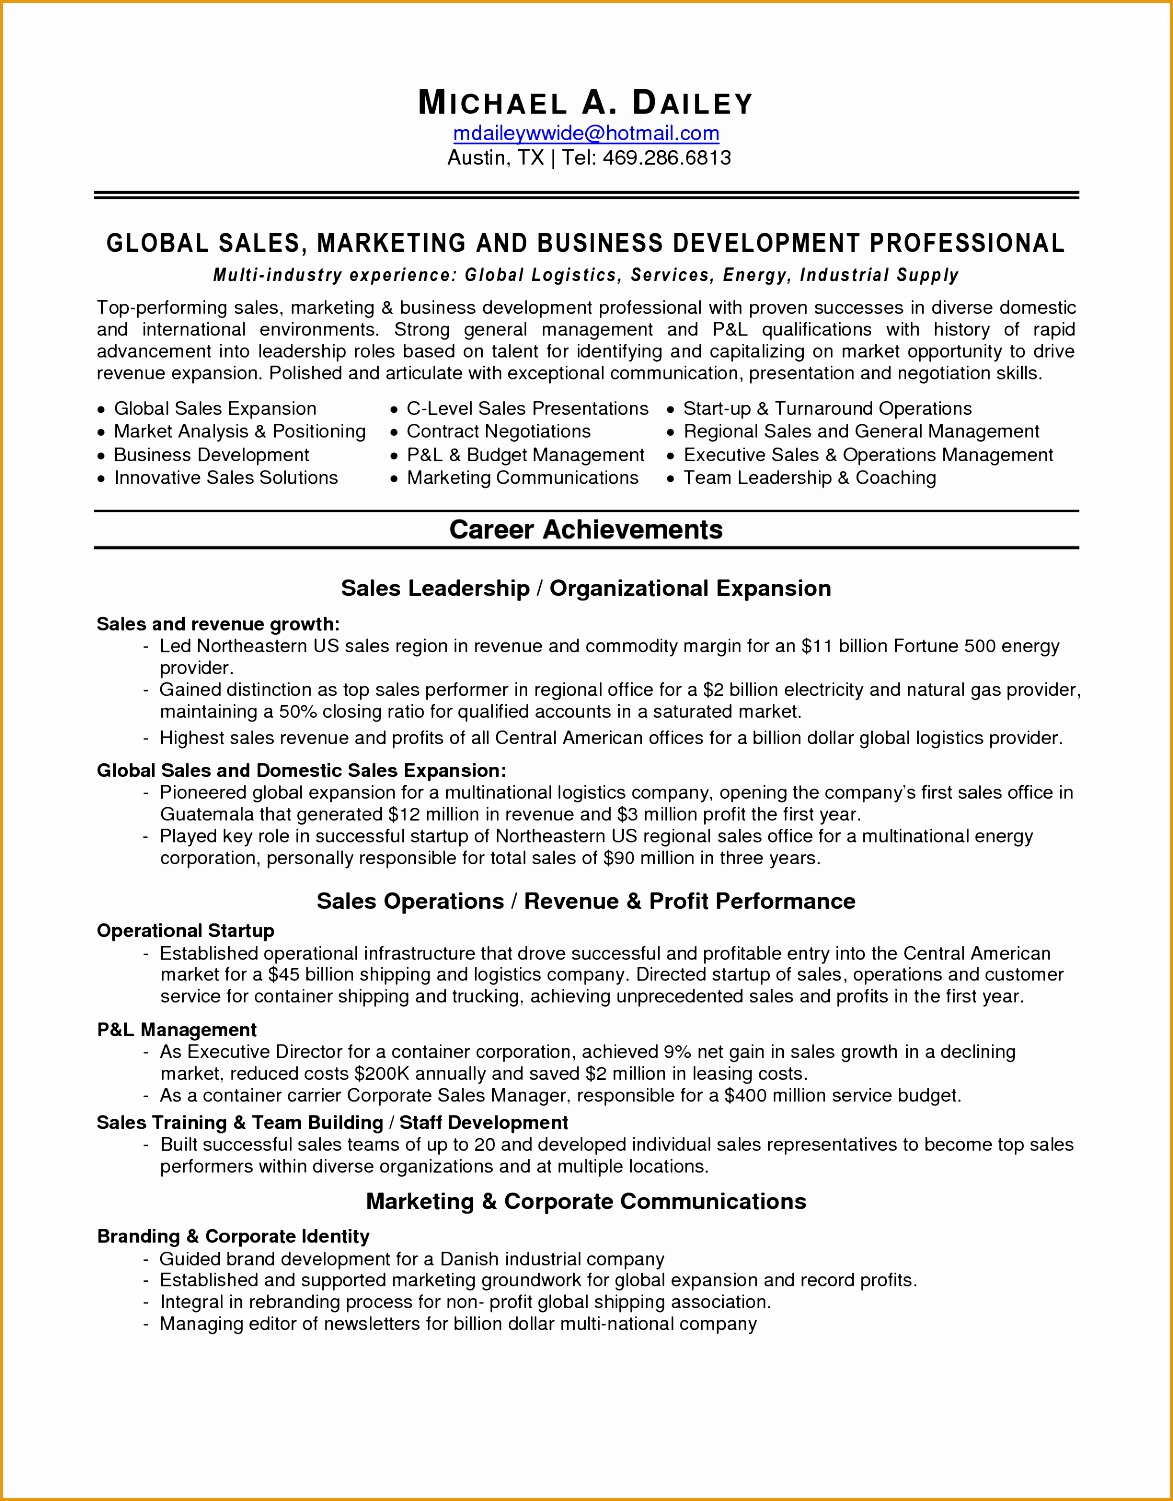 Resume Template For Marketing 6 Sales Marketing Resume Sample Free Samples Examples